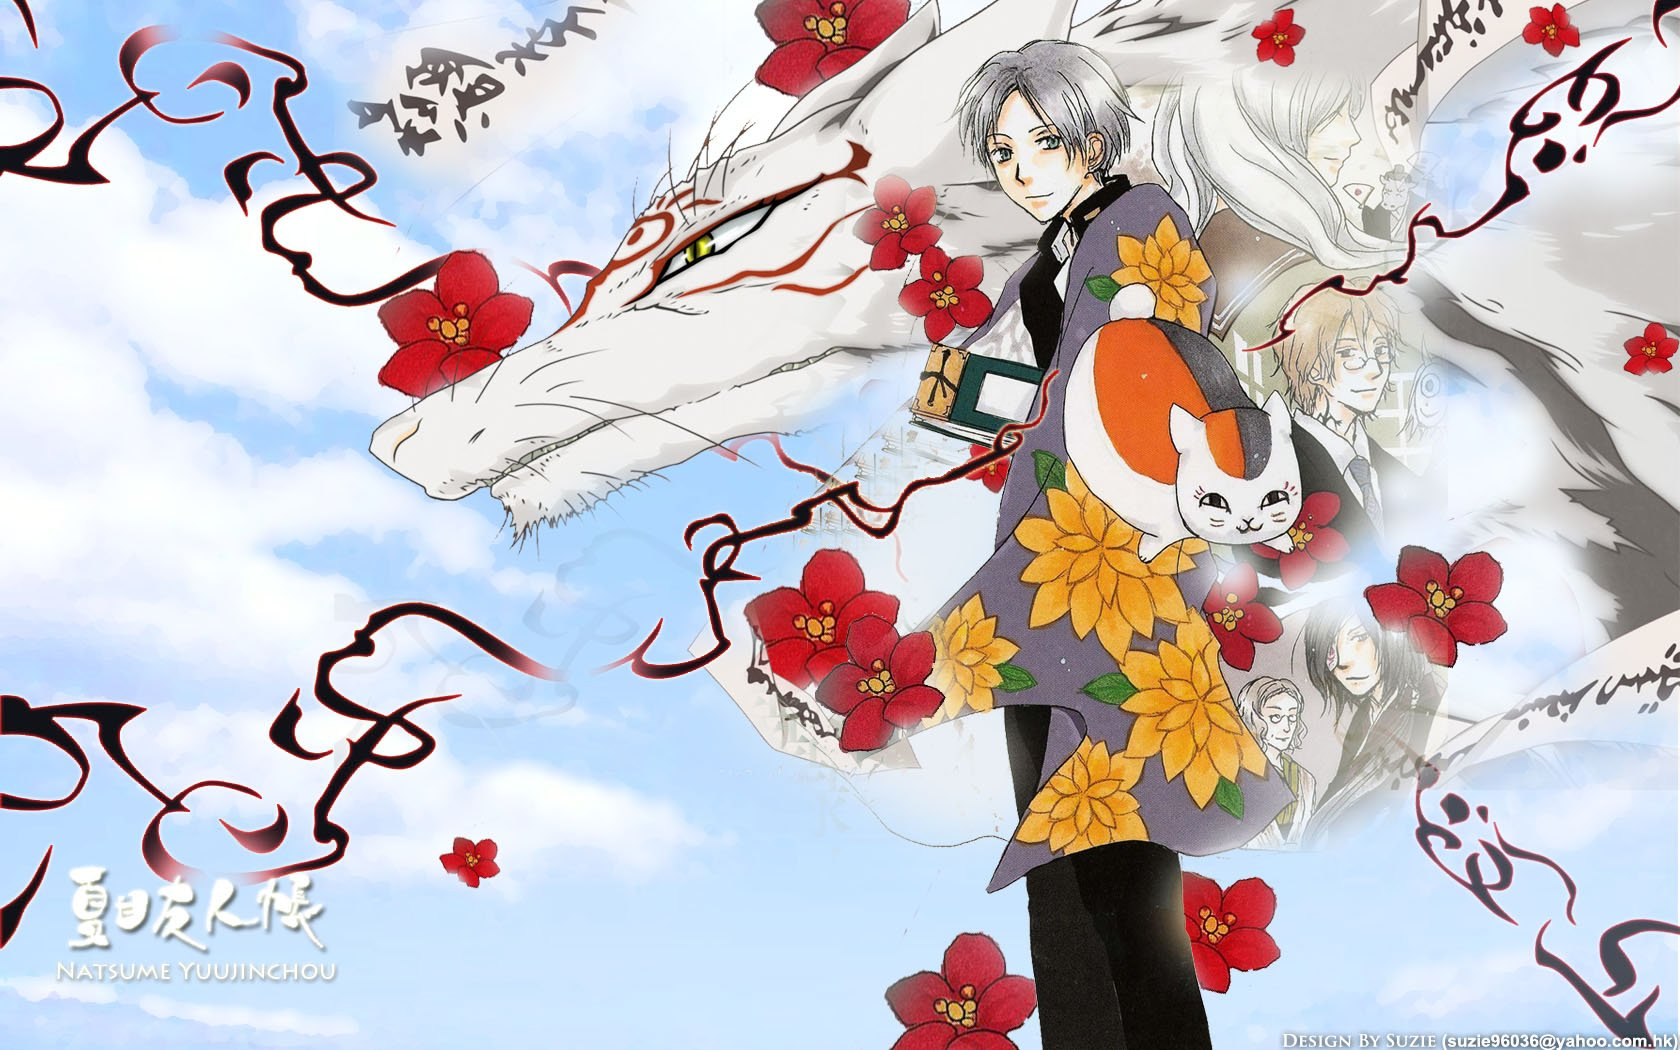 Natsume Yuujinchou Wallpapers Widescreen 9U4IWW4   4USkY 1680x1050